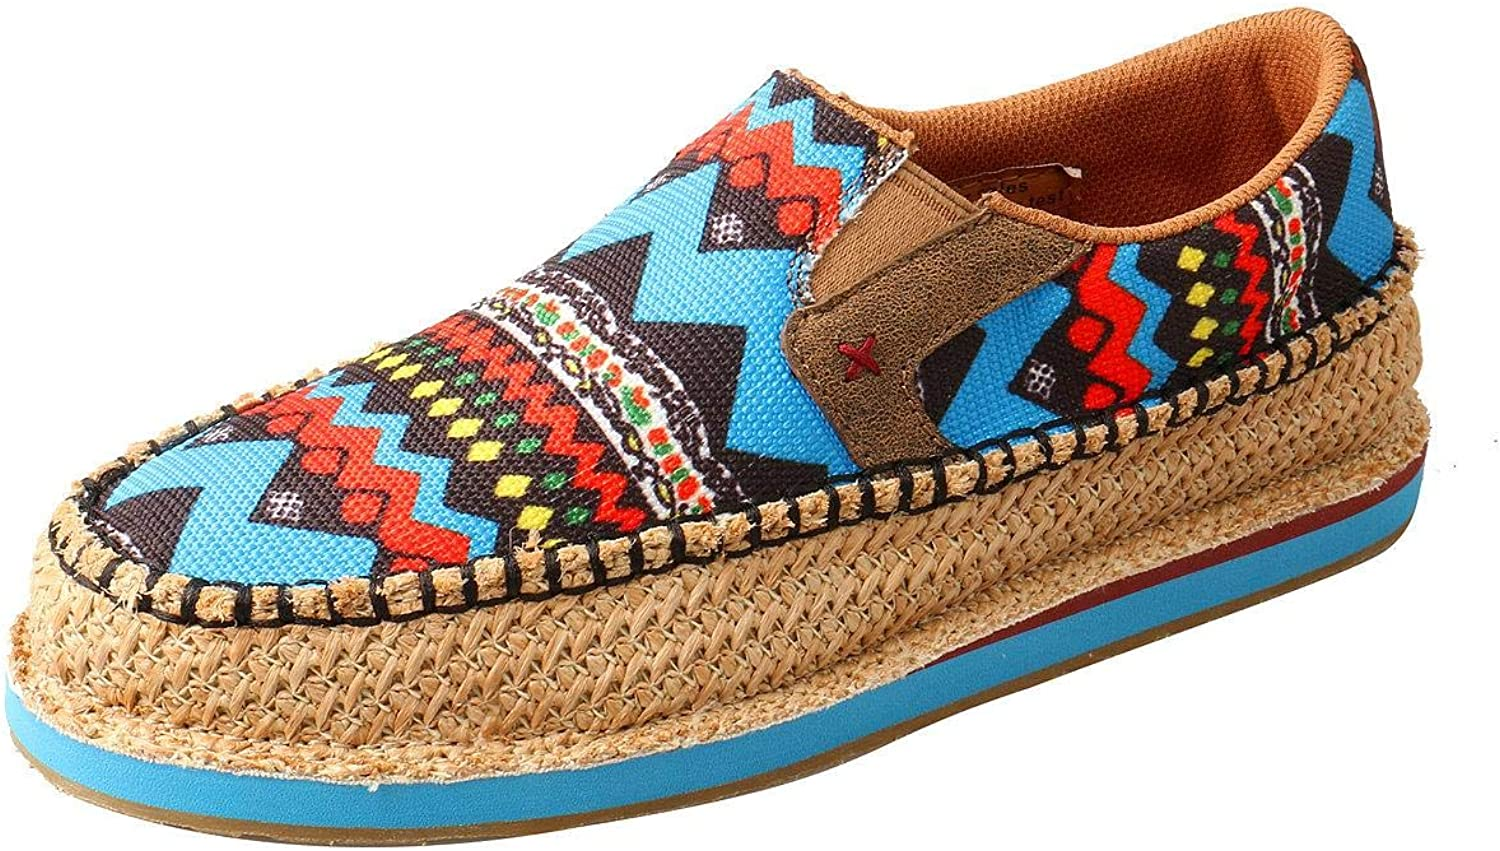 1231defb1c8 Twisted Women's Driving Loafers Moc Toe - Wcl0007 Moccasin X ...